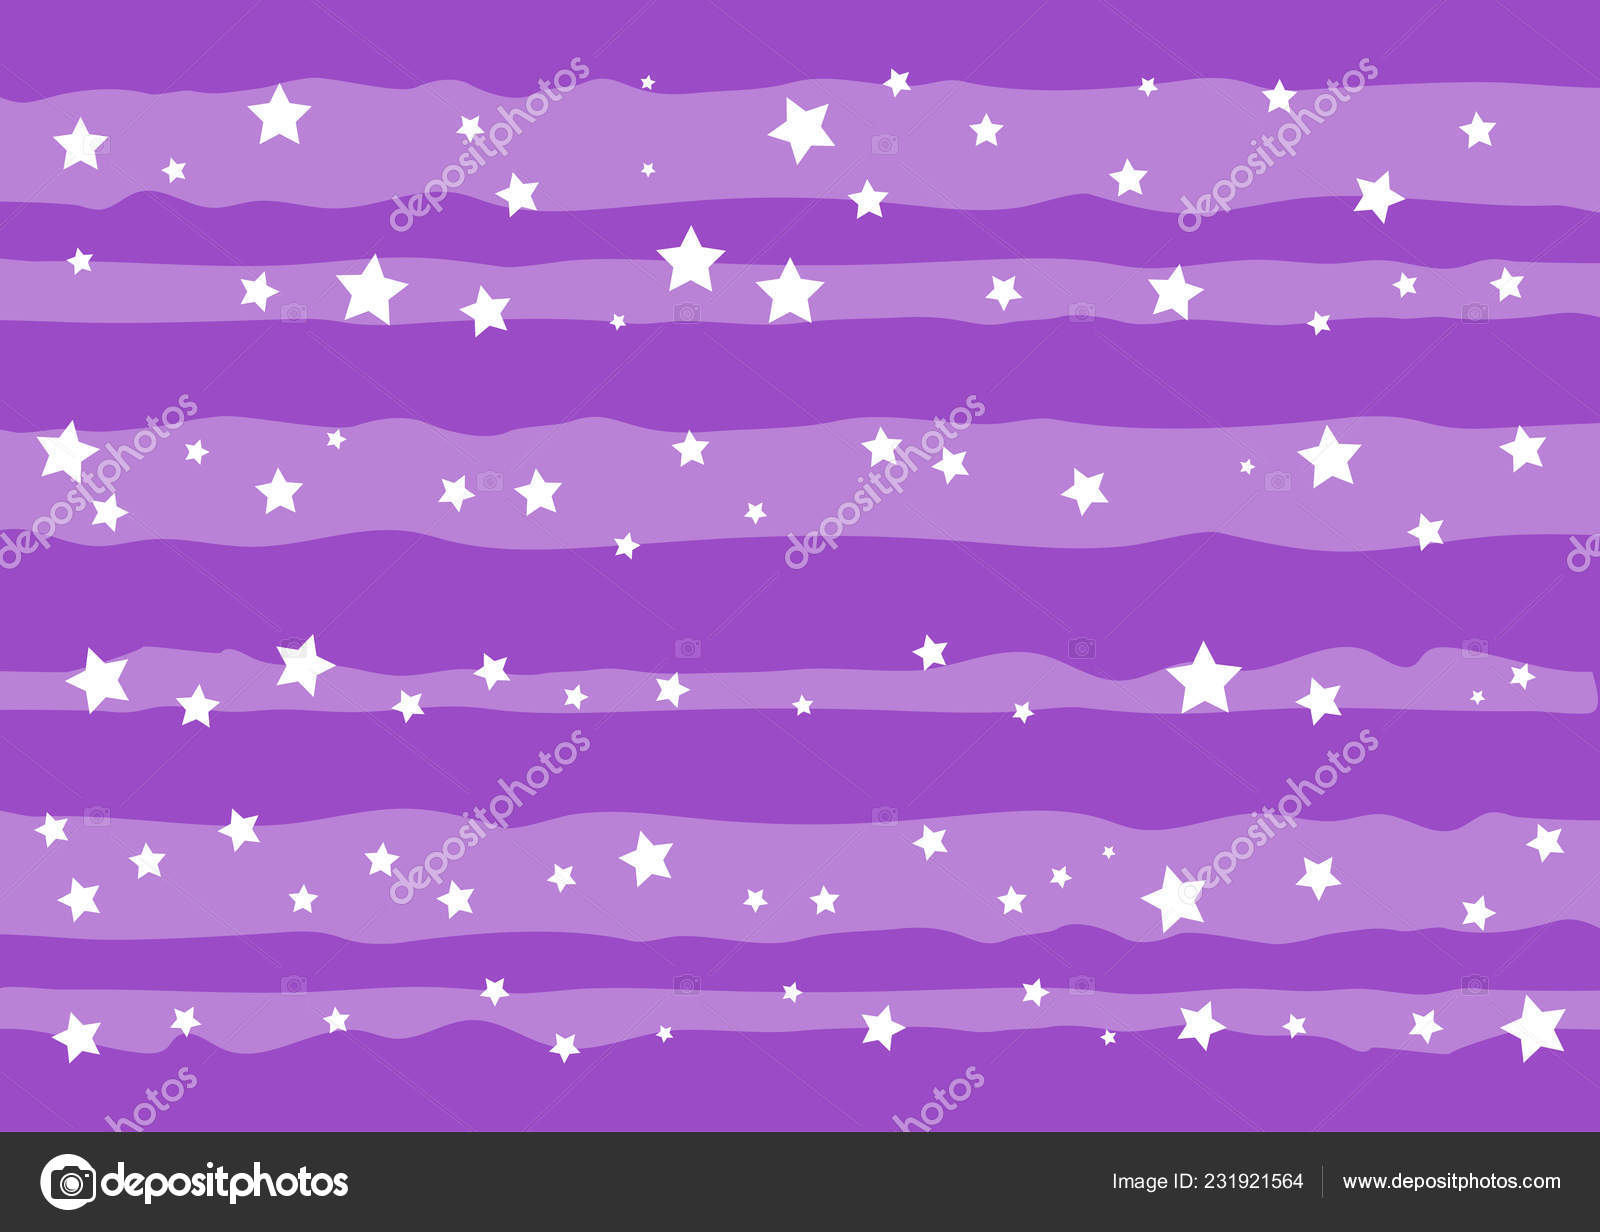 Decorative Purple Background White Stripes Stars Decoration Poster Banner Greeting Stock Vector C Reziziatdin 231921564